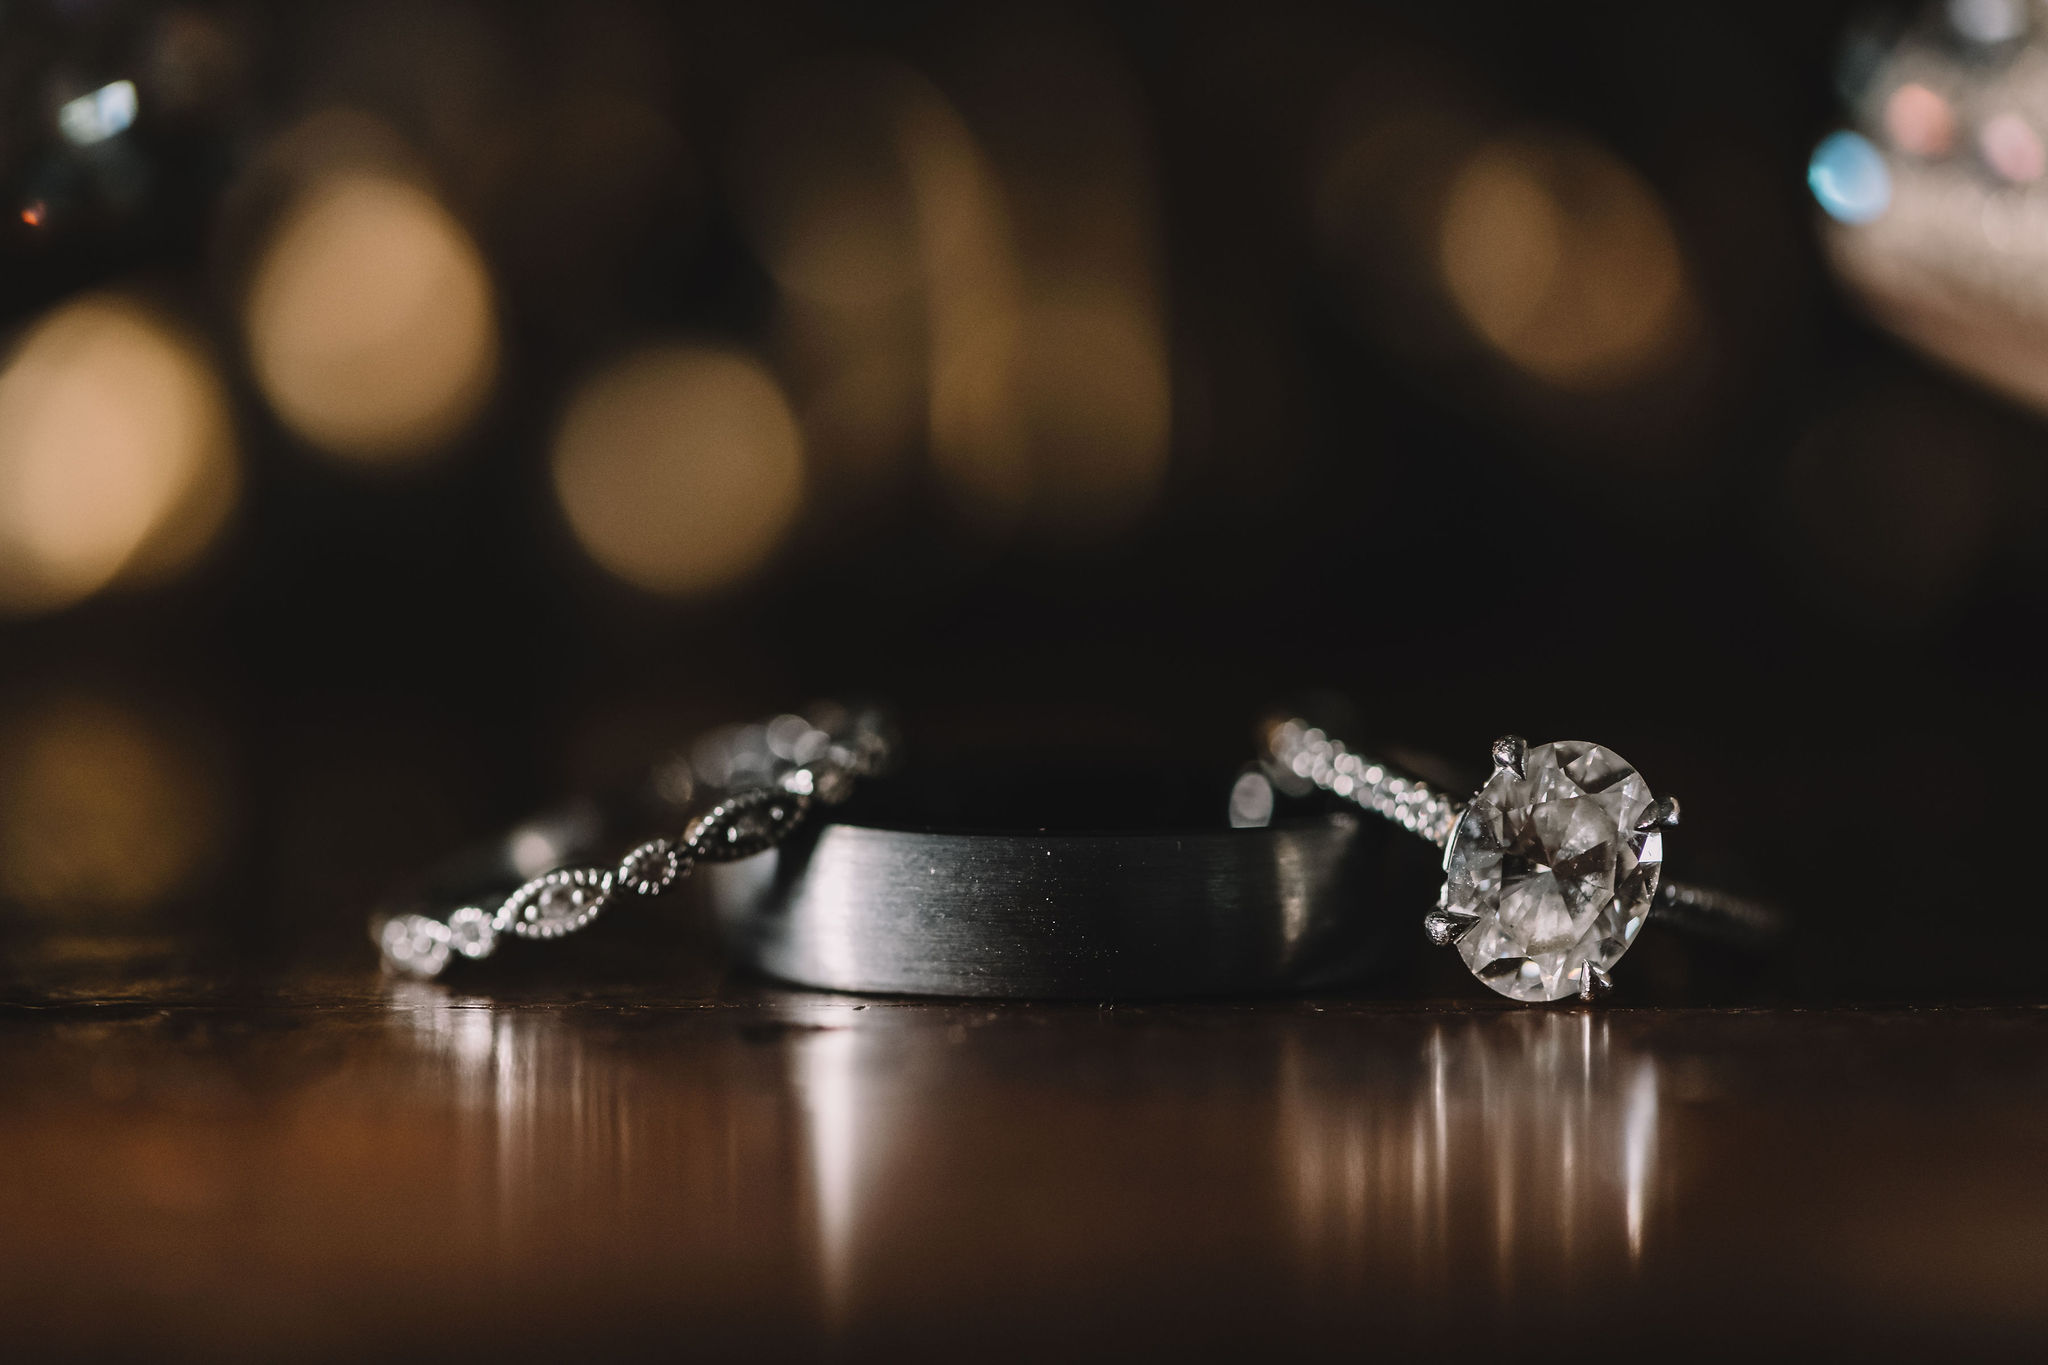 Rachel and Jimmy's wedding rings from Brilliant Earth.